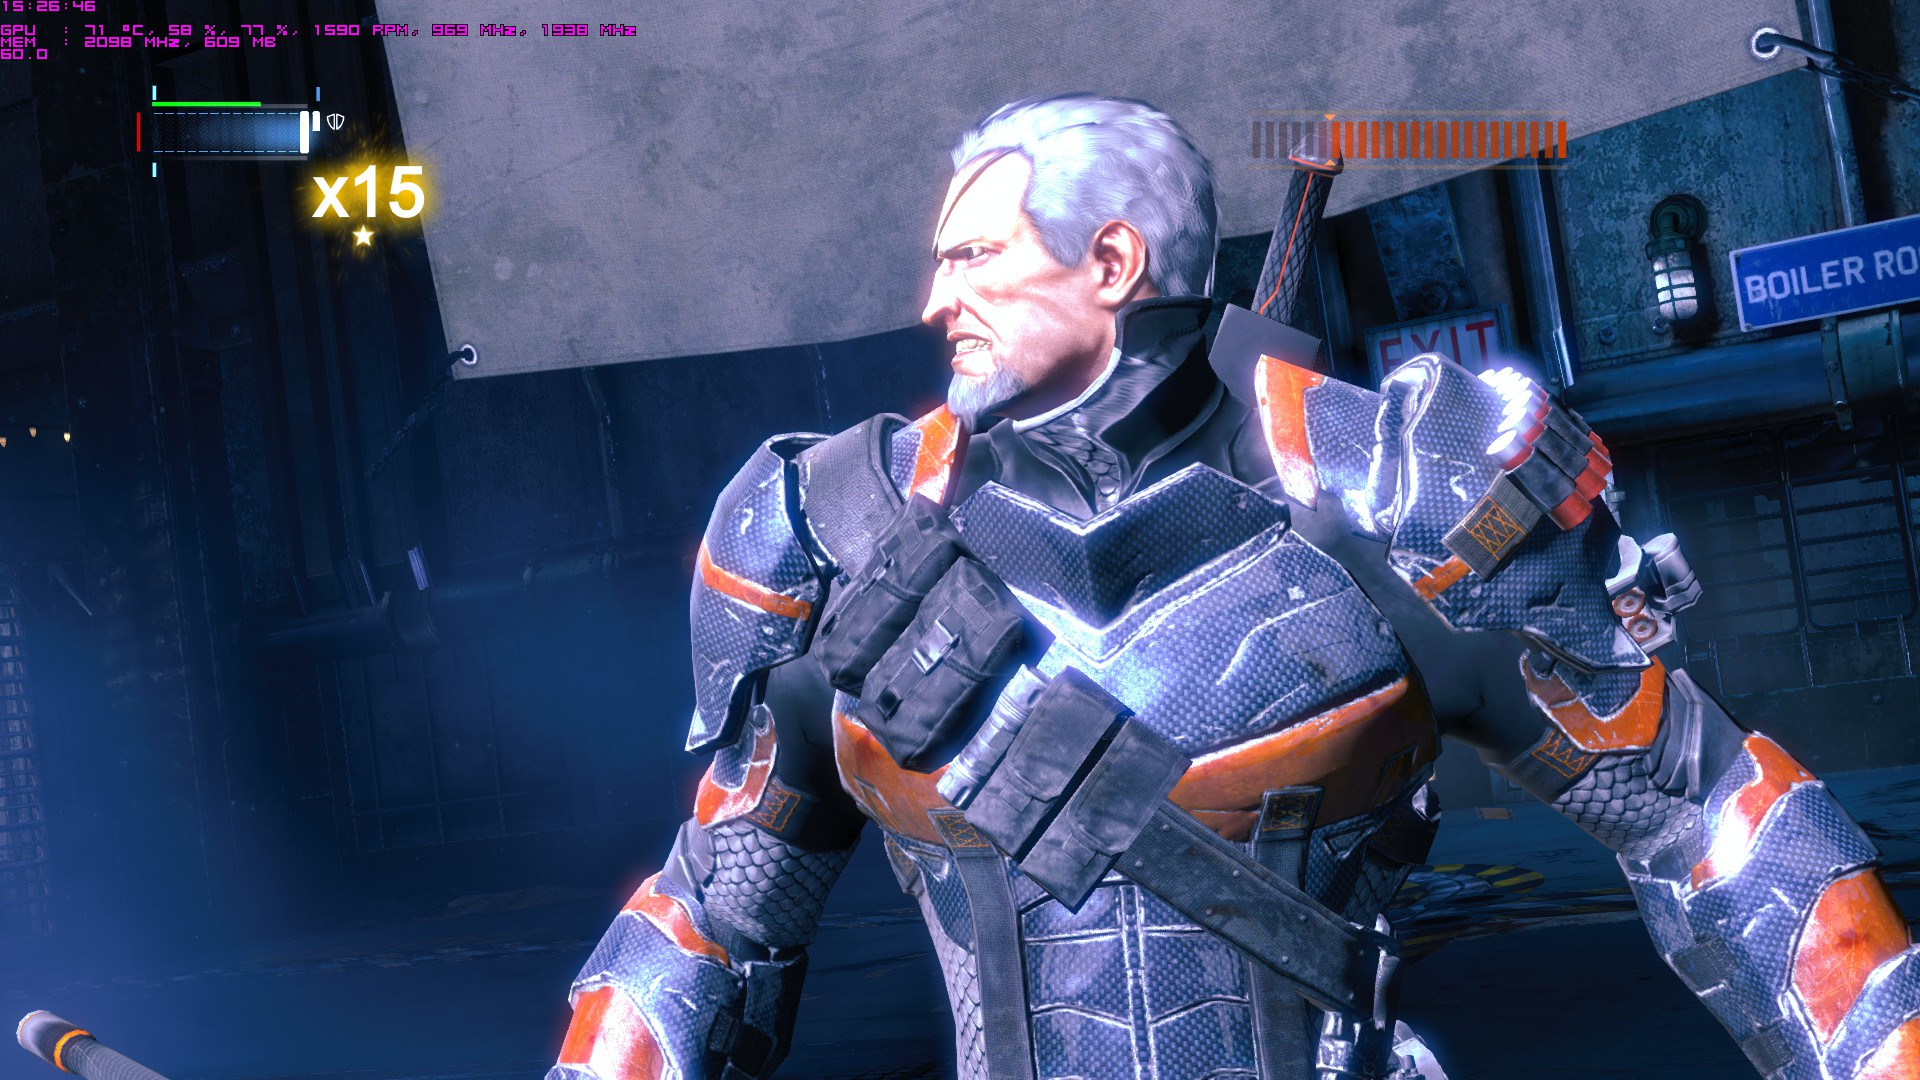 steam community screenshot slade wilsondeathstroke